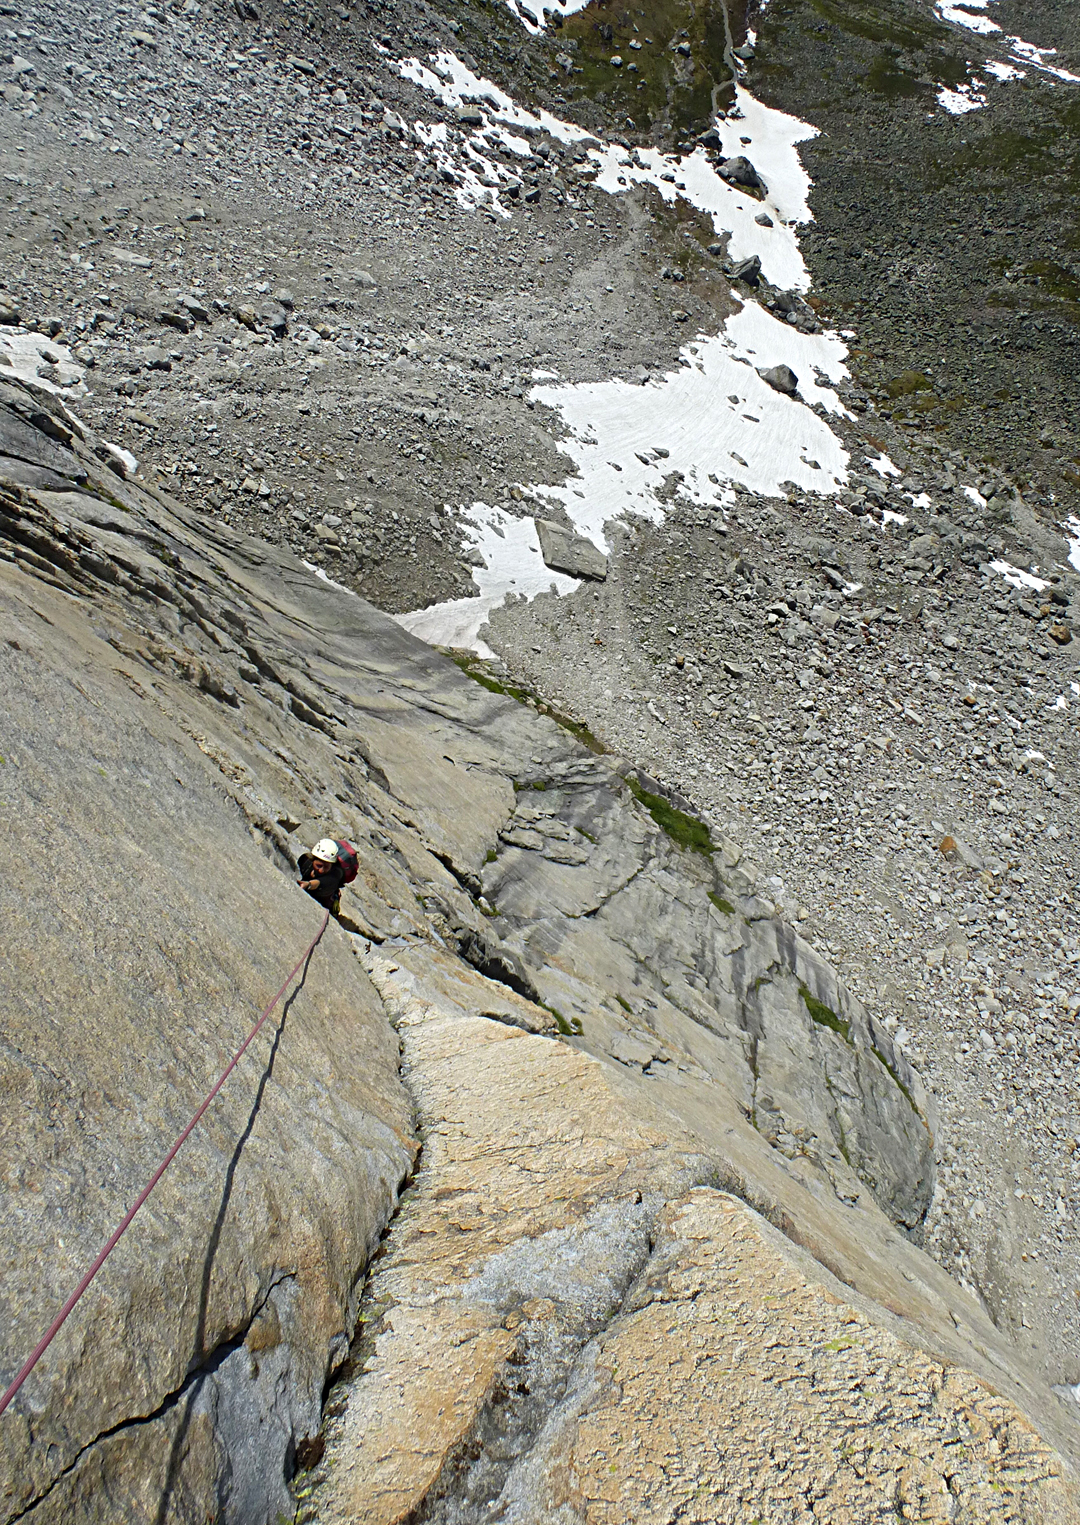 Evgenia Leontyeva follows on the first ascent of The Choice is Yours, west face of Pik Kart.